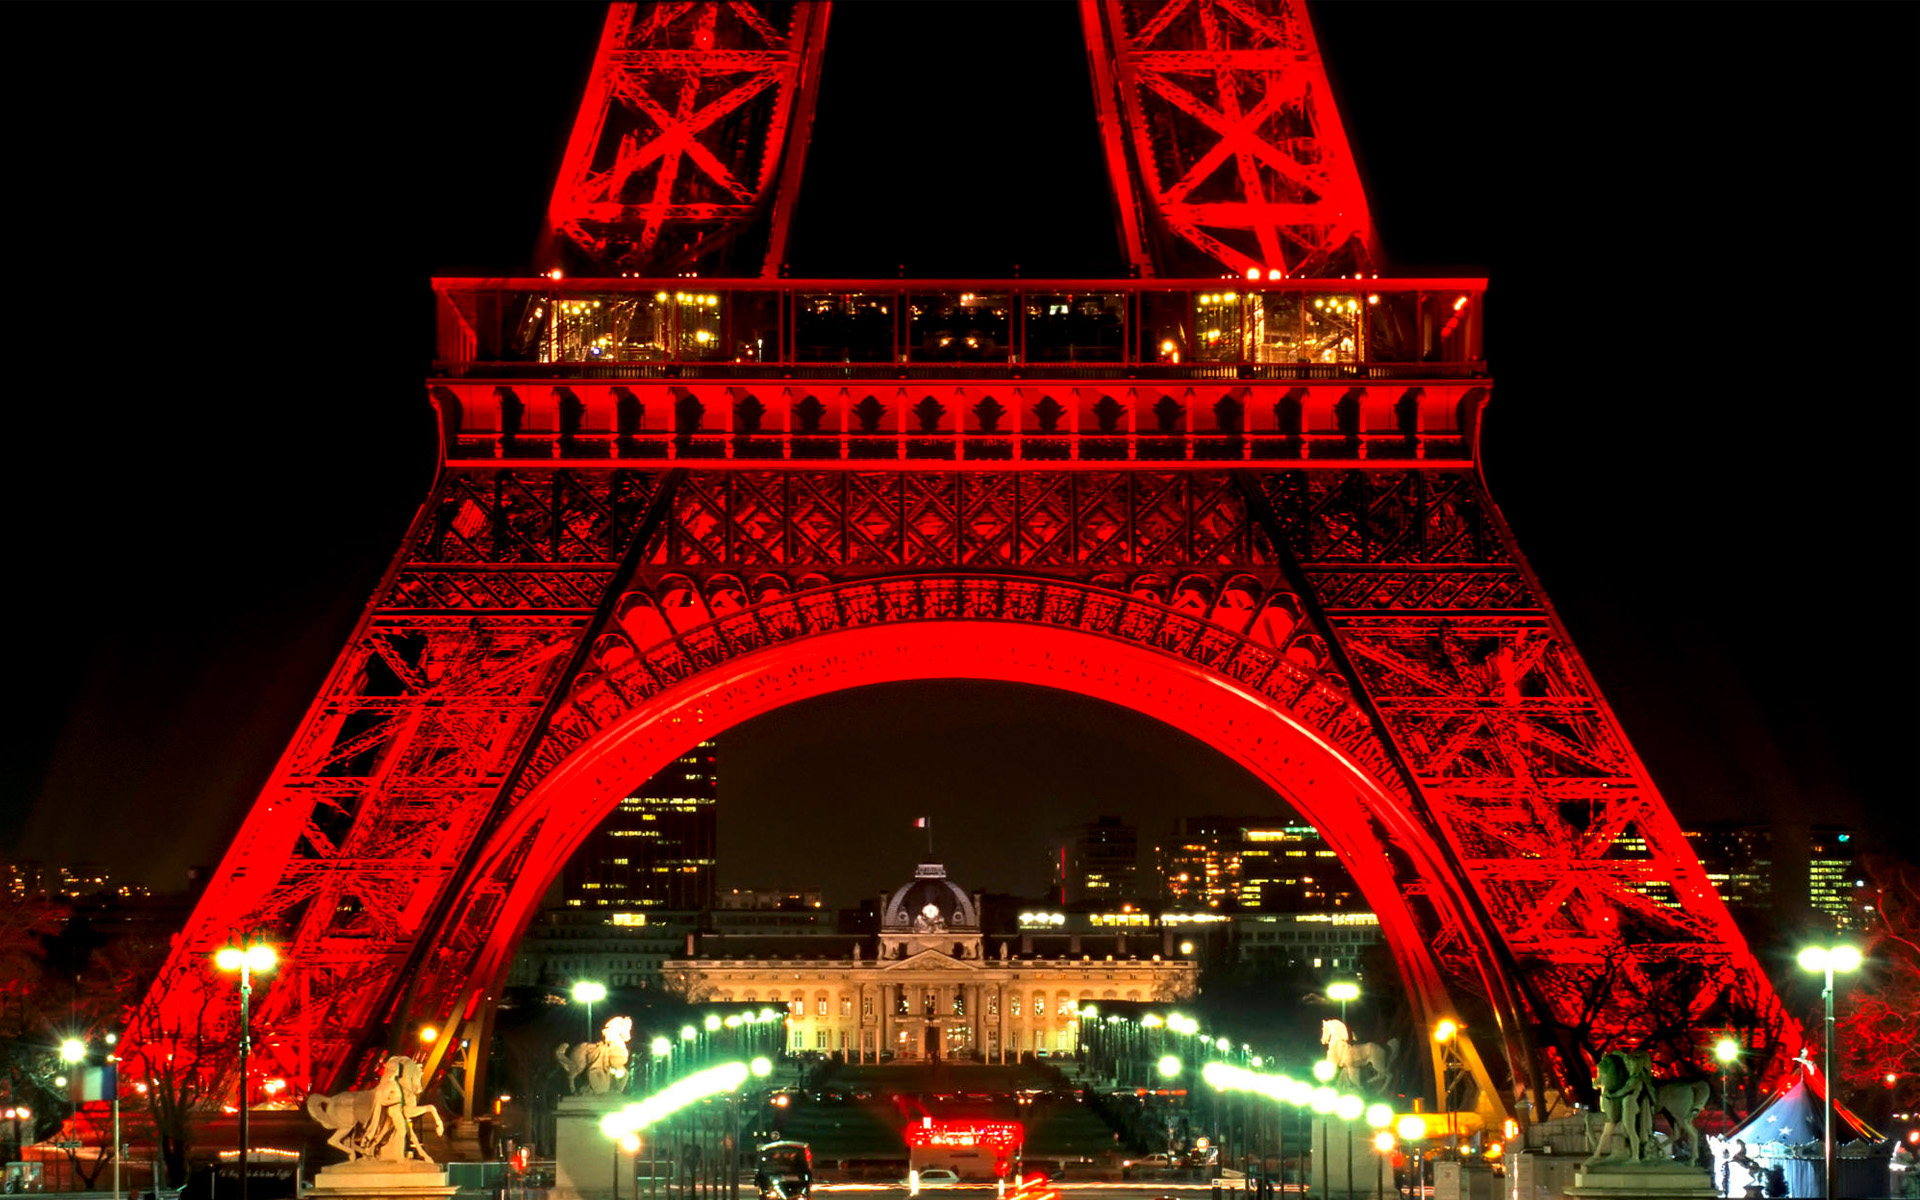 eiffel-tower-at-night-Pictures download